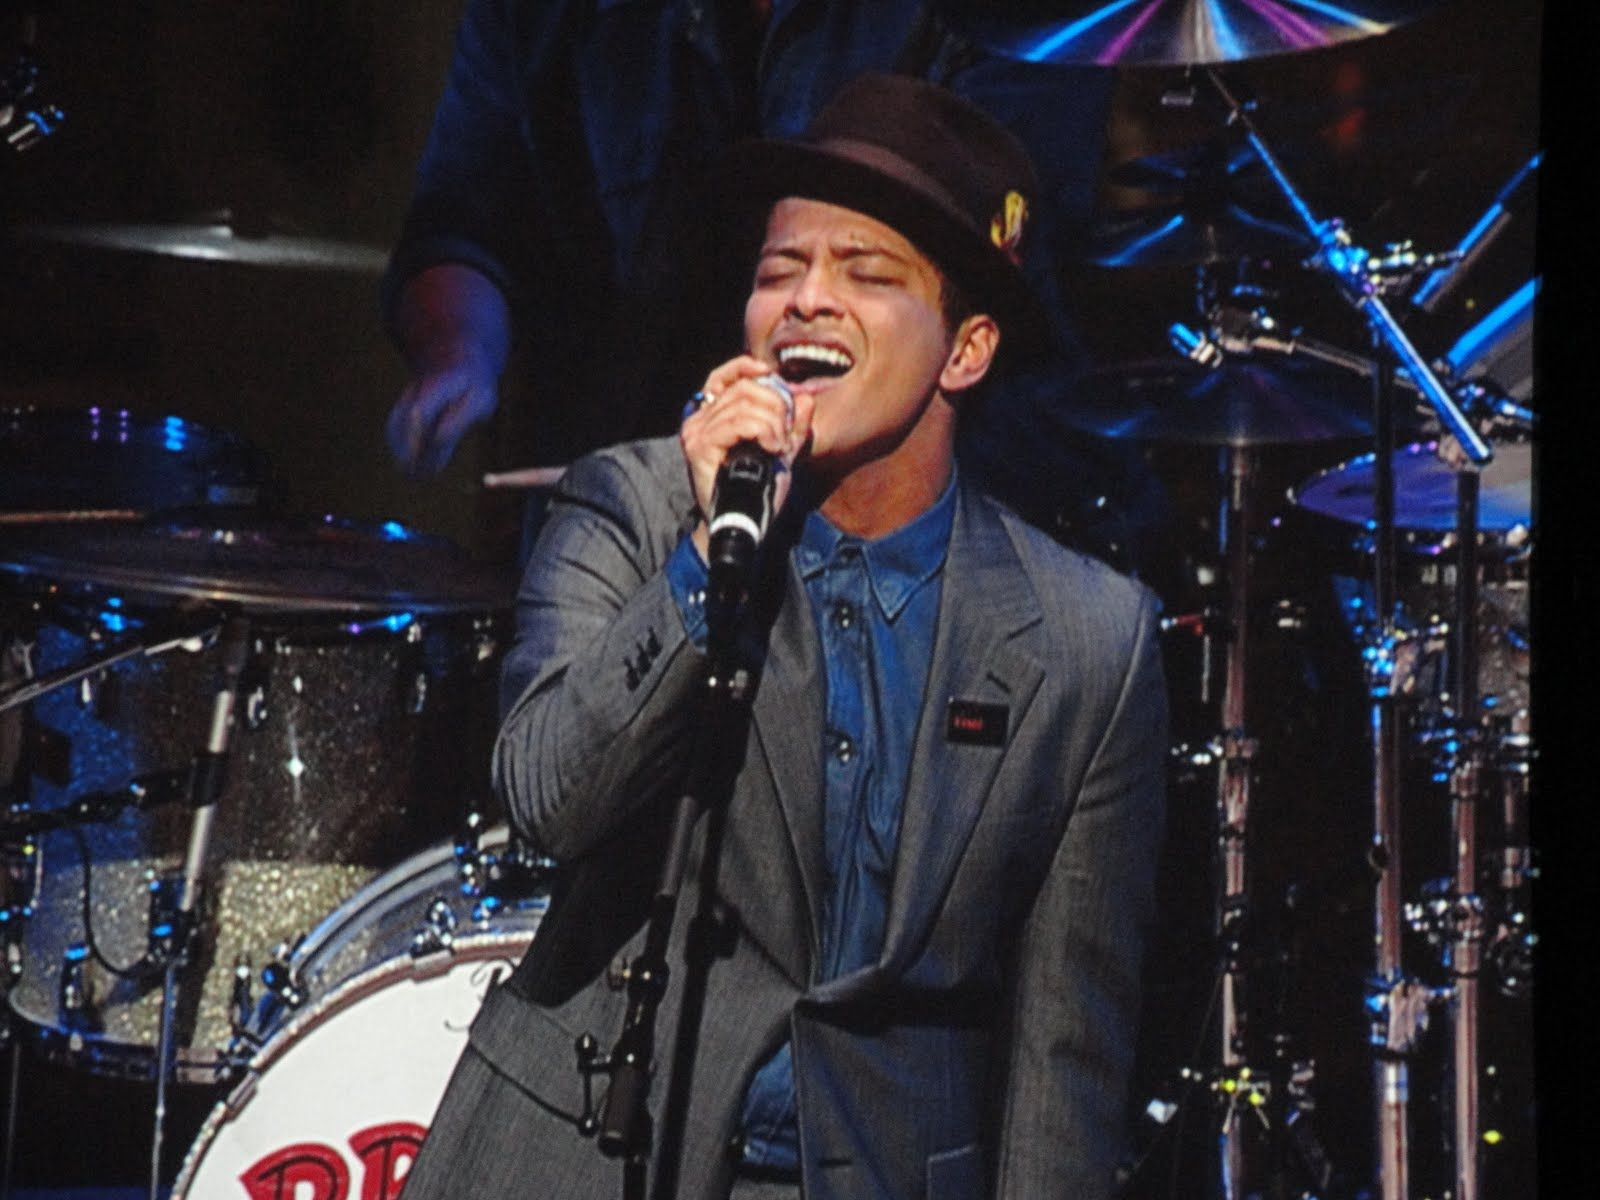 """Bruno Mars singing """"Just the Way You Are"""" - WHAT STYLE!"""